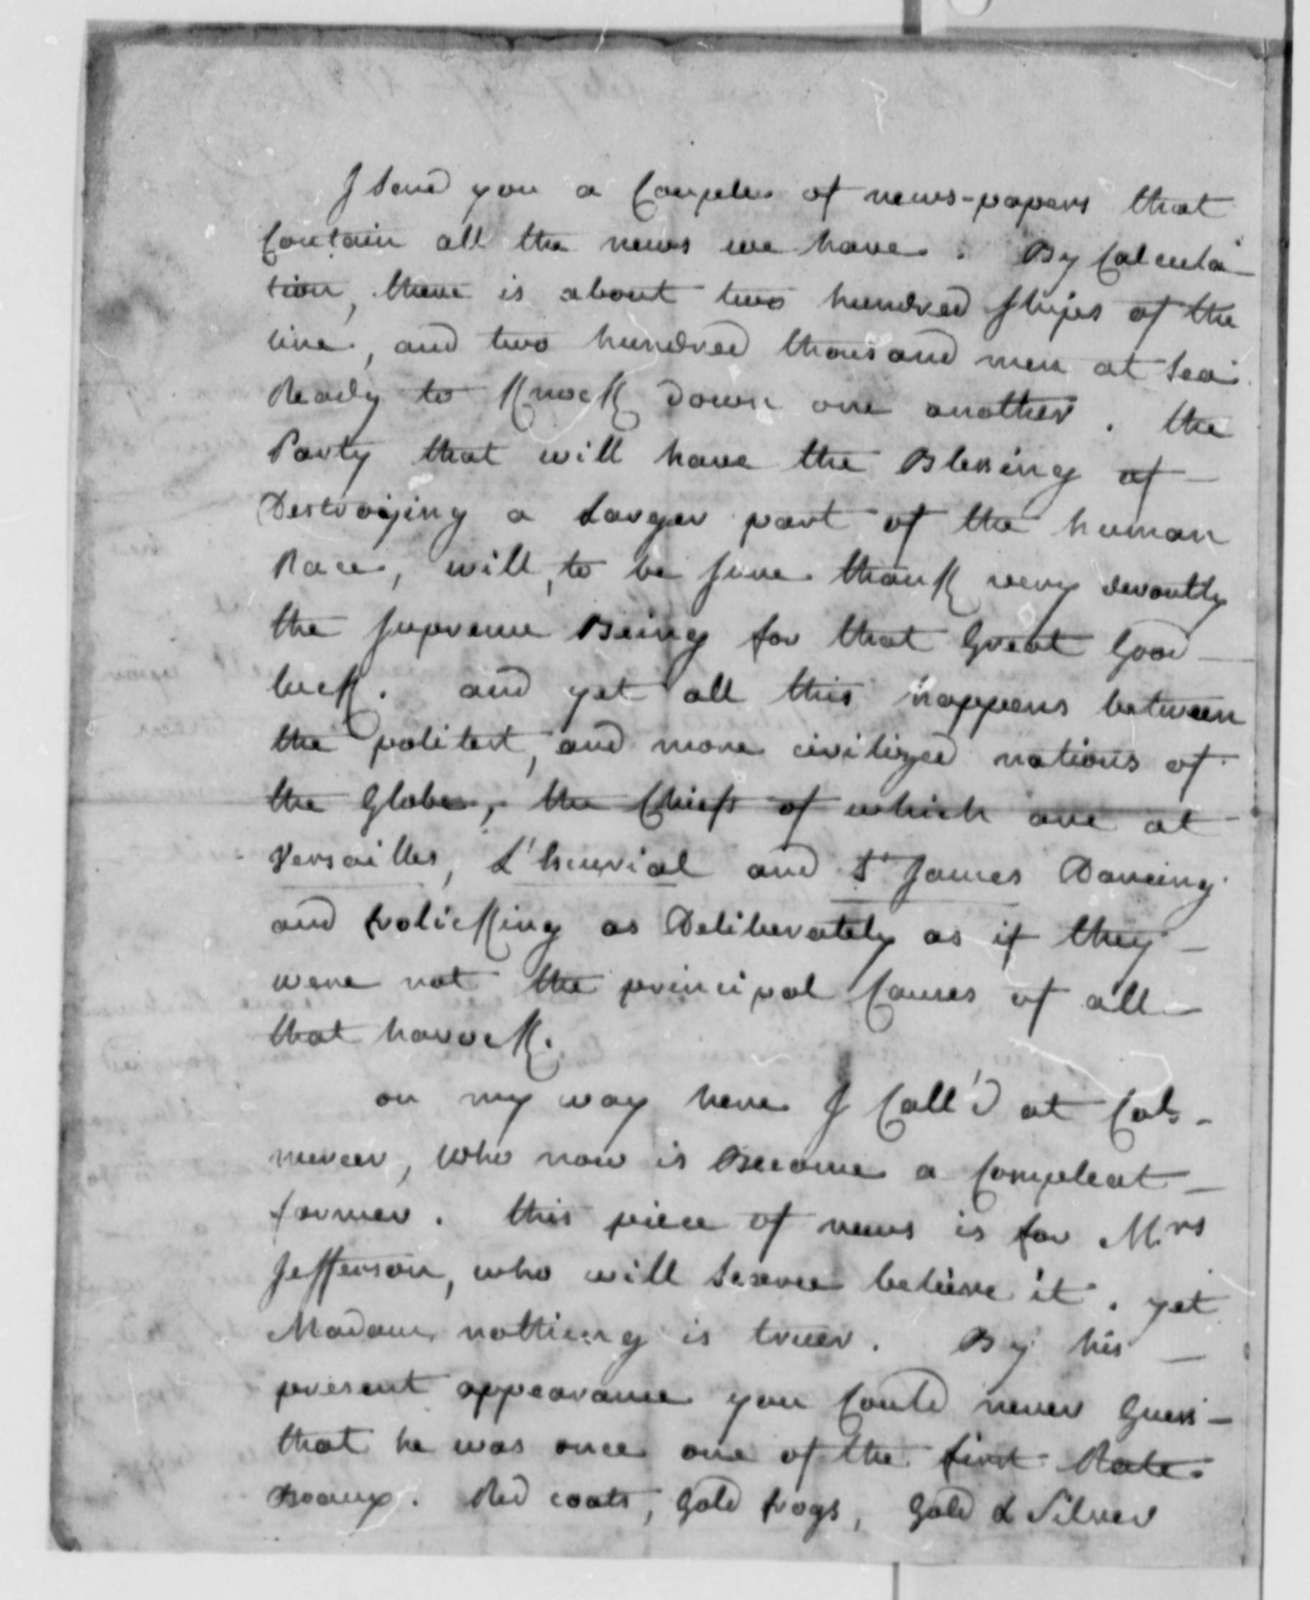 Charles, Chevalier d'Annemours to Thomas Jefferson, February 27, 1782